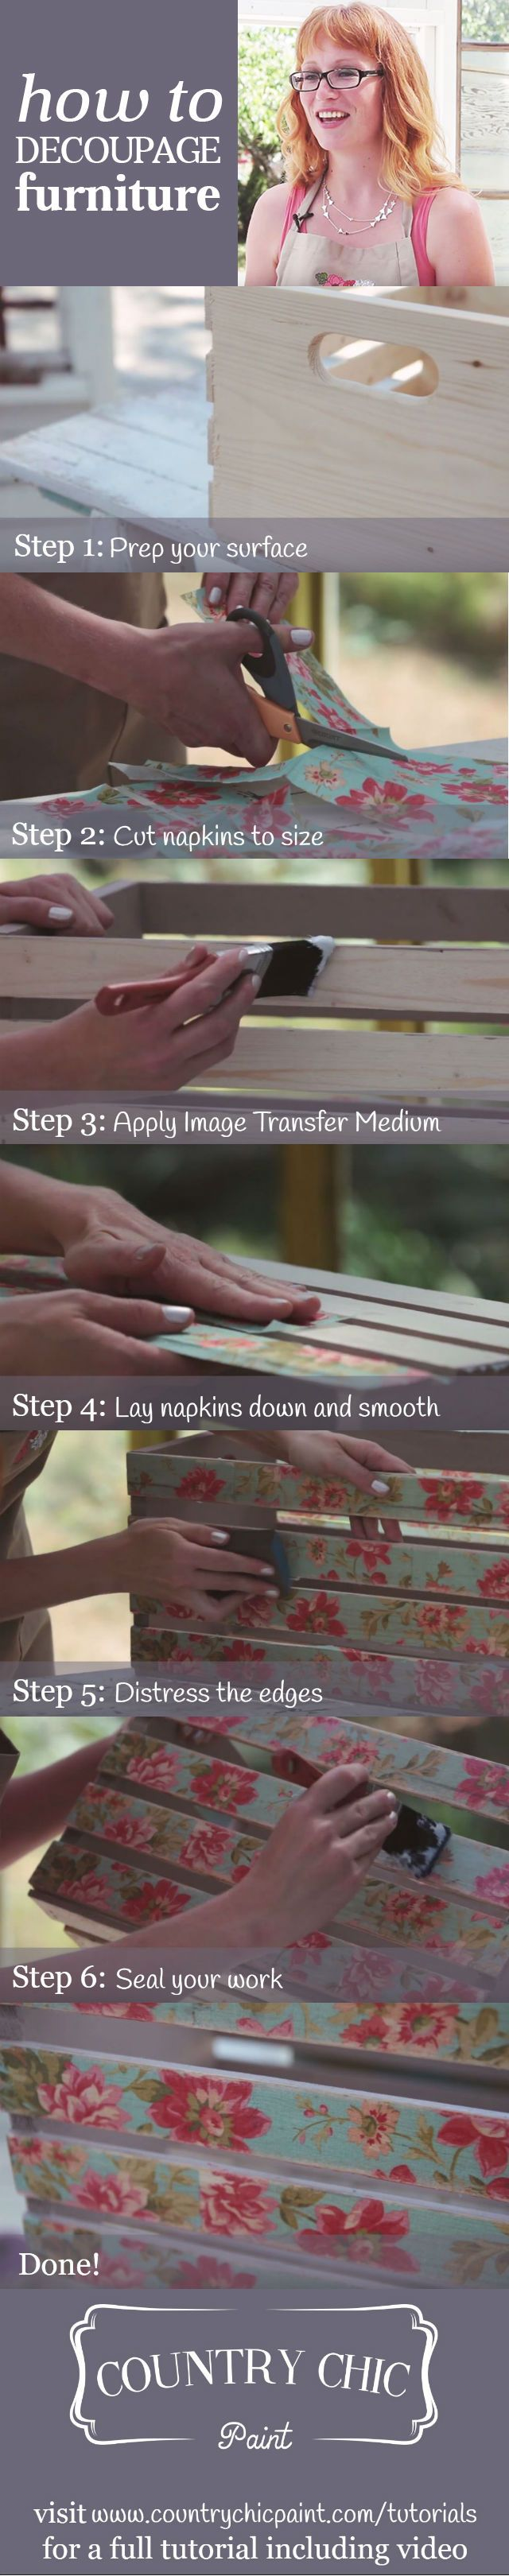 How to Decoupage Furniture & Home Decor with Image Transfer Medium   Decoupaging Tutorial #countrychicpaint - www.countrychicpaint.com/tutorials